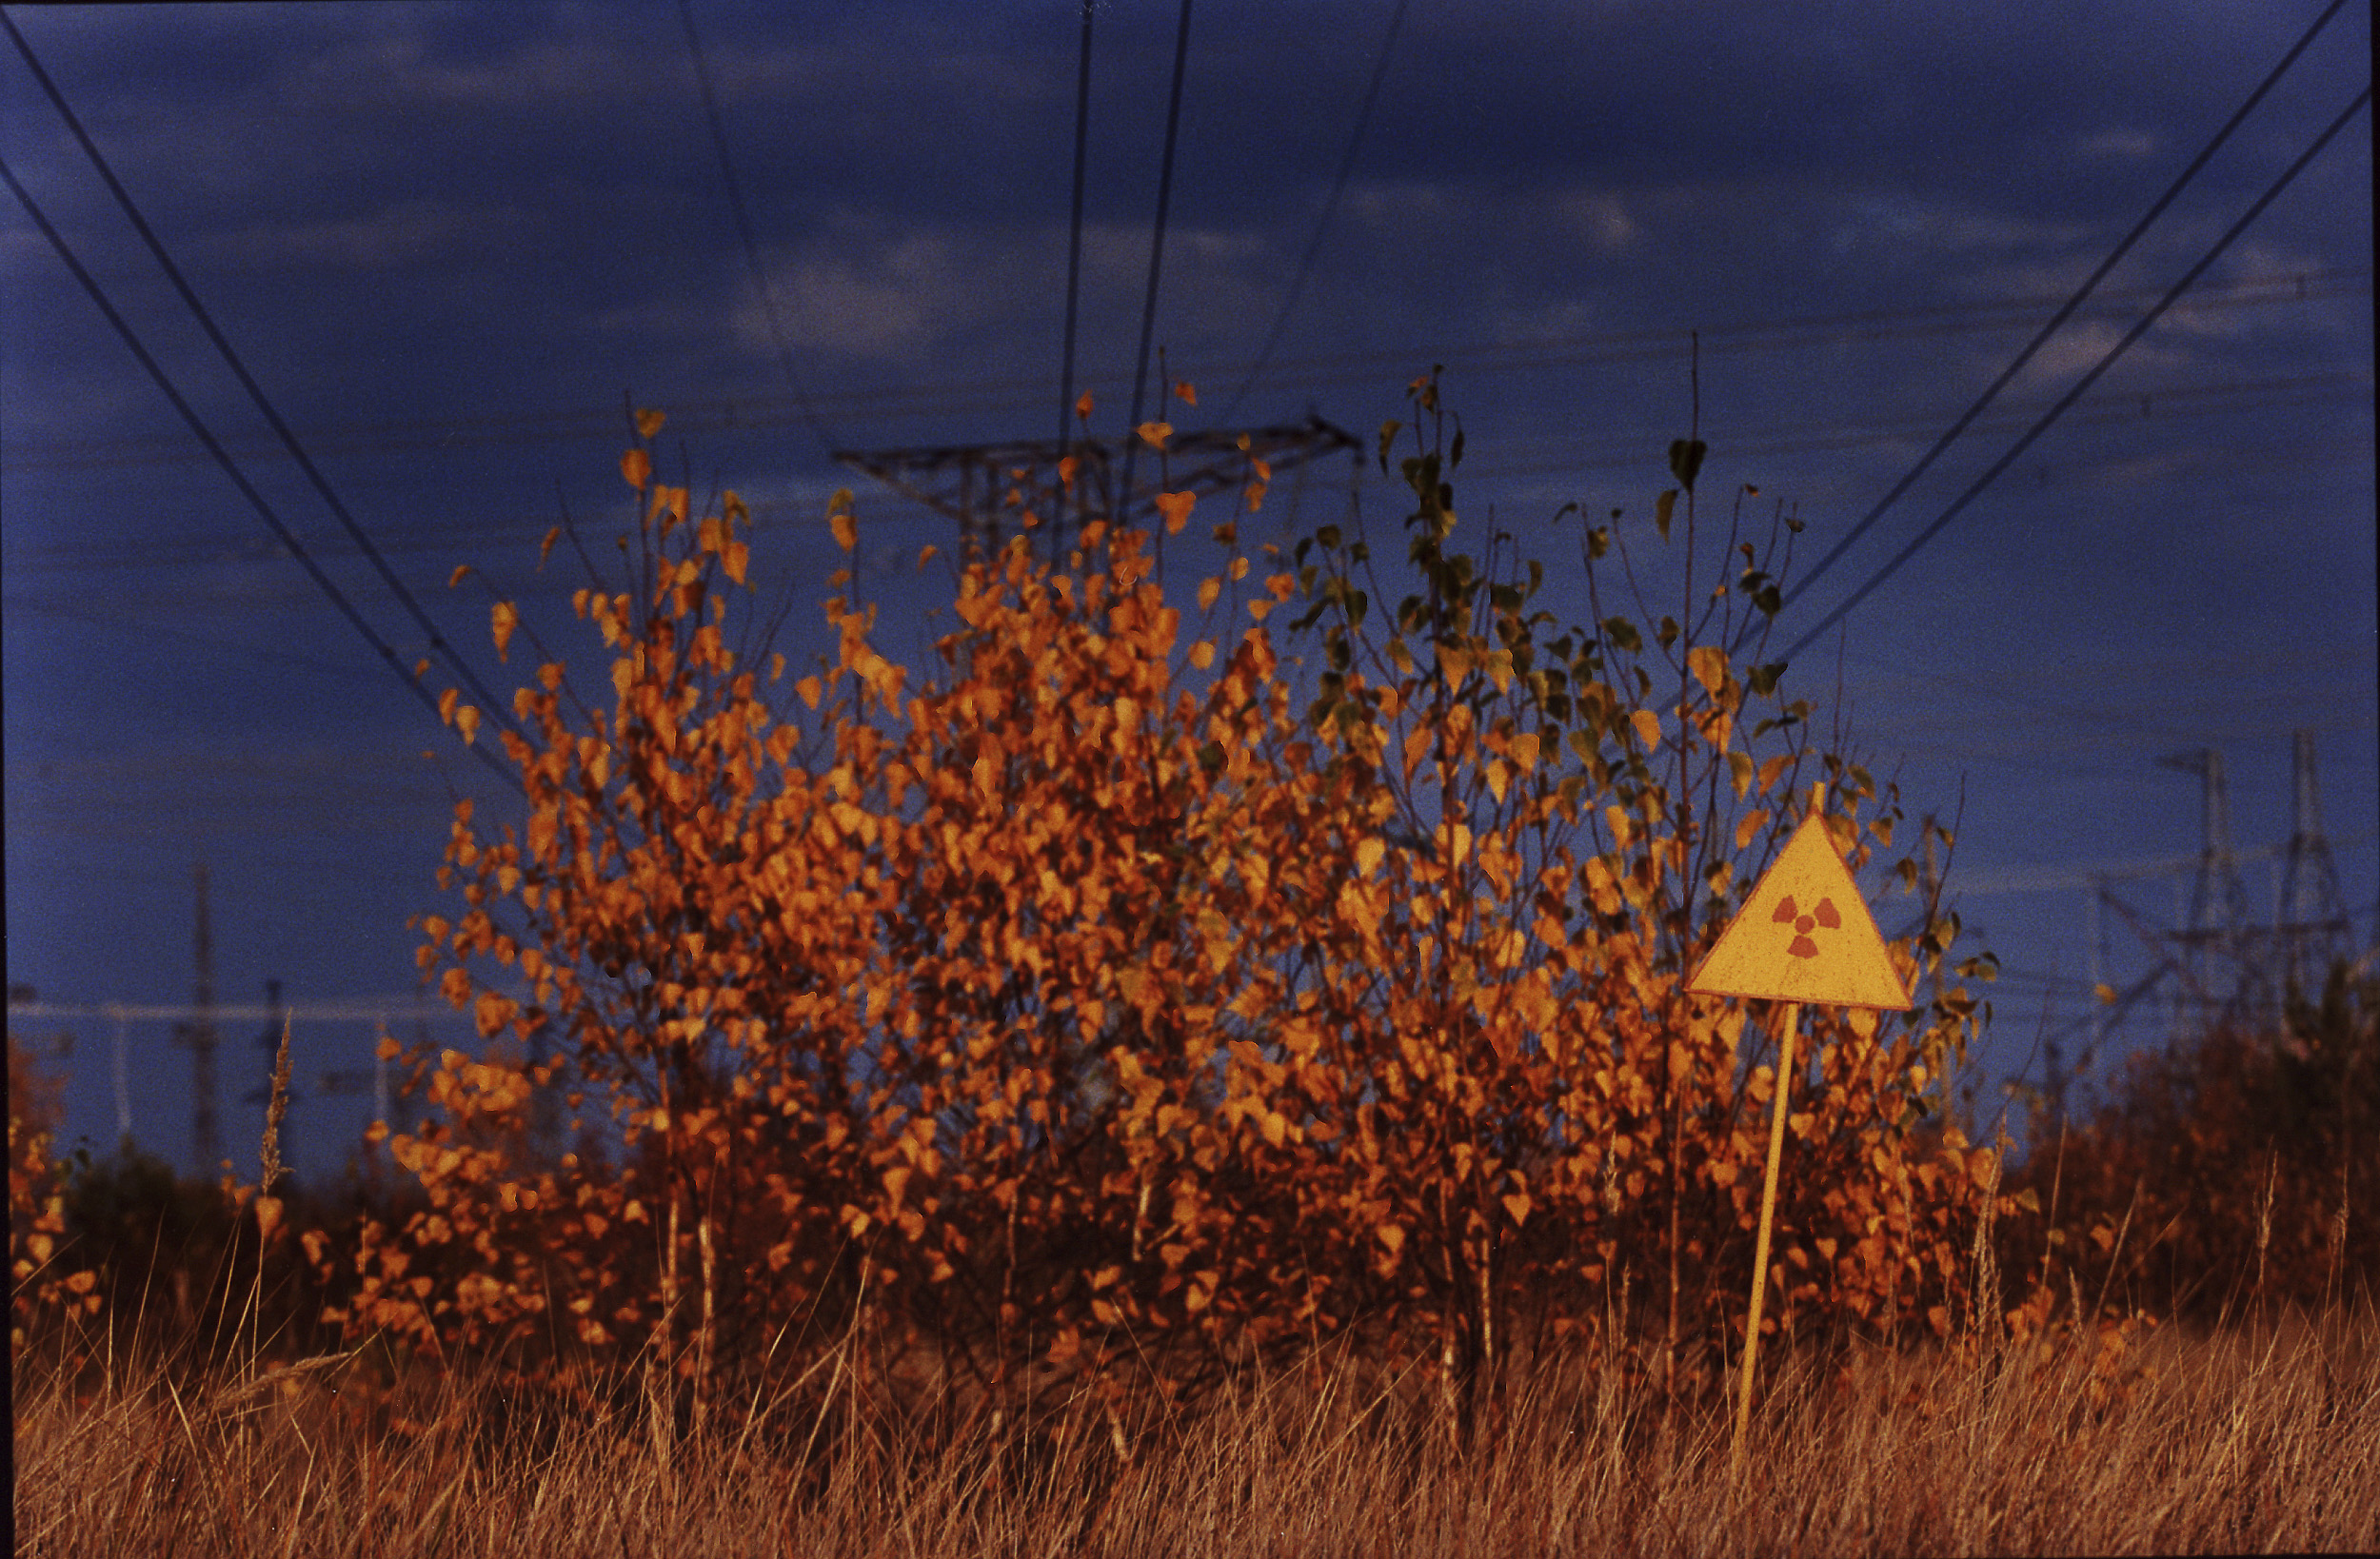 Radiant beauty: A warning sign 2 km west from the Chernobyl nuclear power plant warns the area is still contaminated. | JUN NAKASUJI PHOTOS